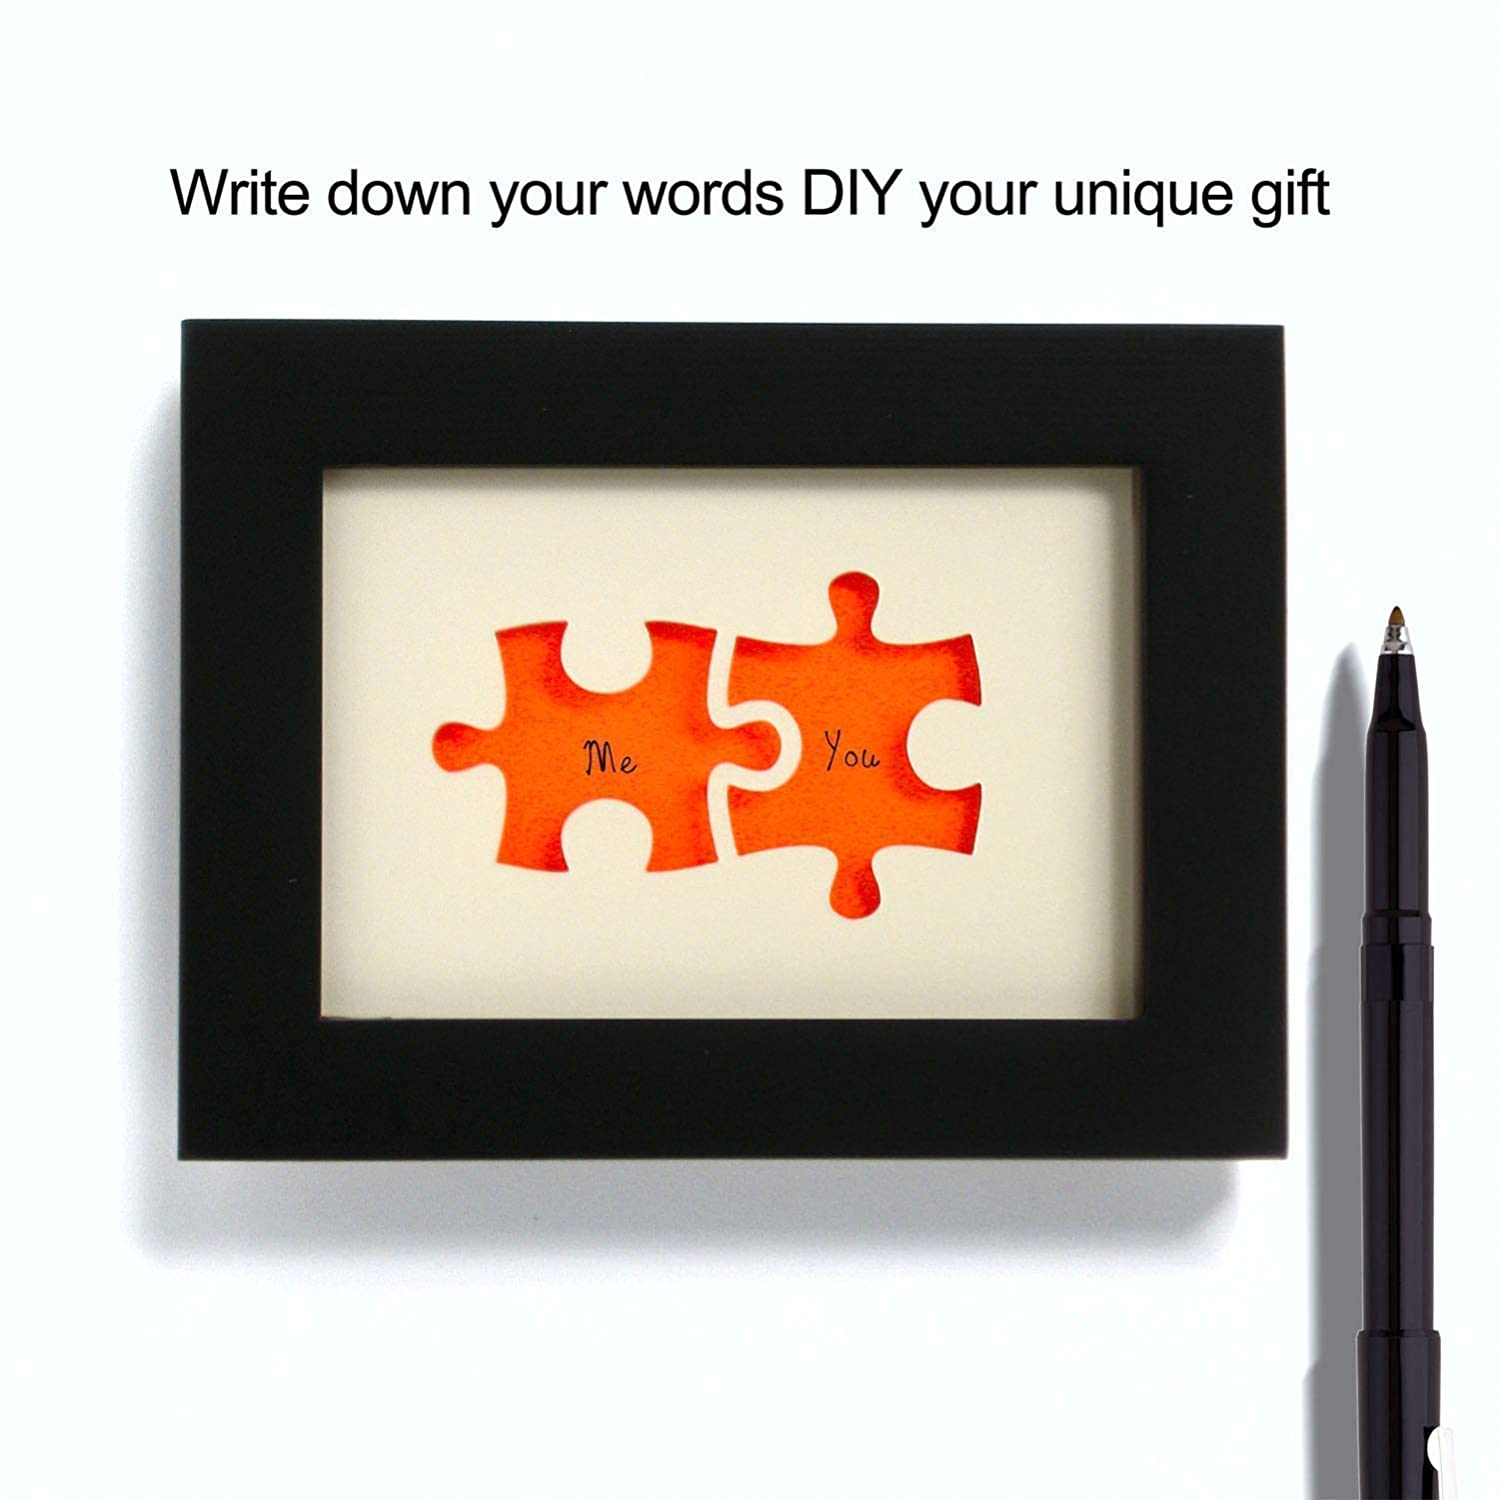 We fit together Puzzle Personalized Wedding Gift Glow in the Dark Paper Cut Art the Perfect Present for the Bride and Groom or Anniversary DIY the Name and Date Easily